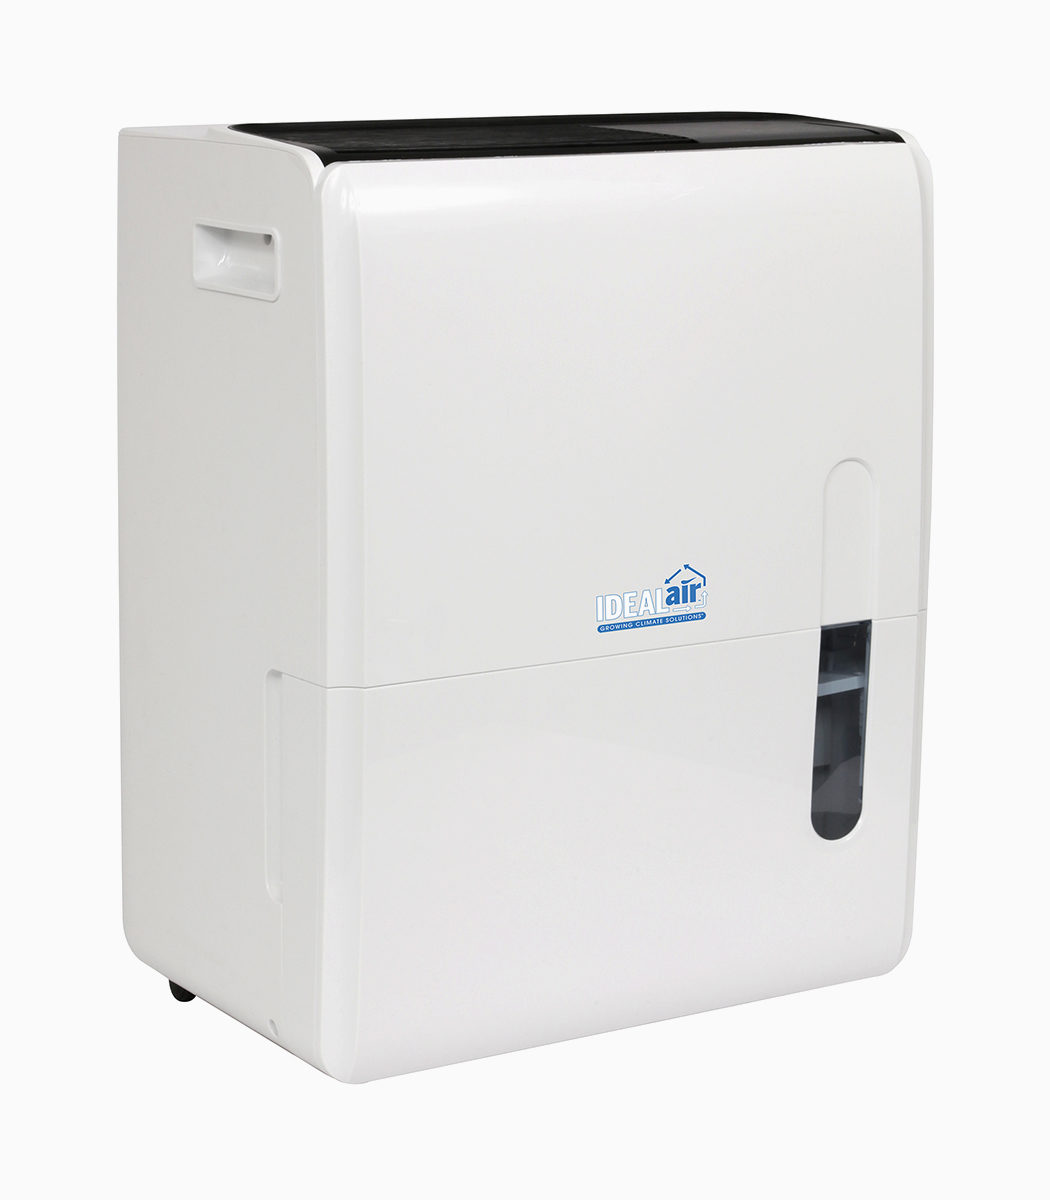 Ideal-Air Dehumidifier 120 Pint with Internal Condensate Pump - IAD120P